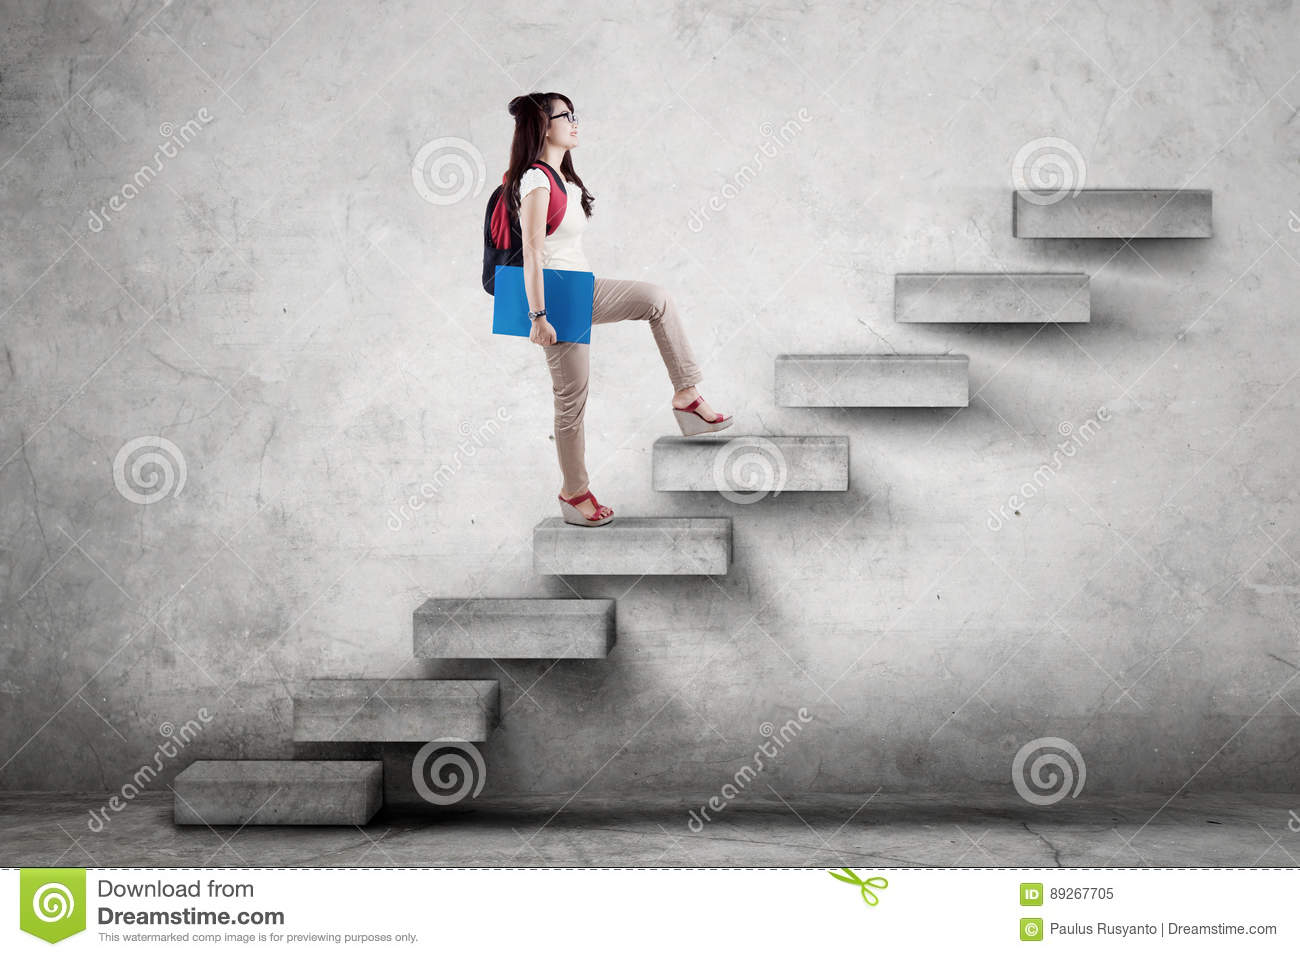 Student With Rucksack Climbing A Stairs Stock Image - Image: 89267705 for Student Climbing Ladder  51ane